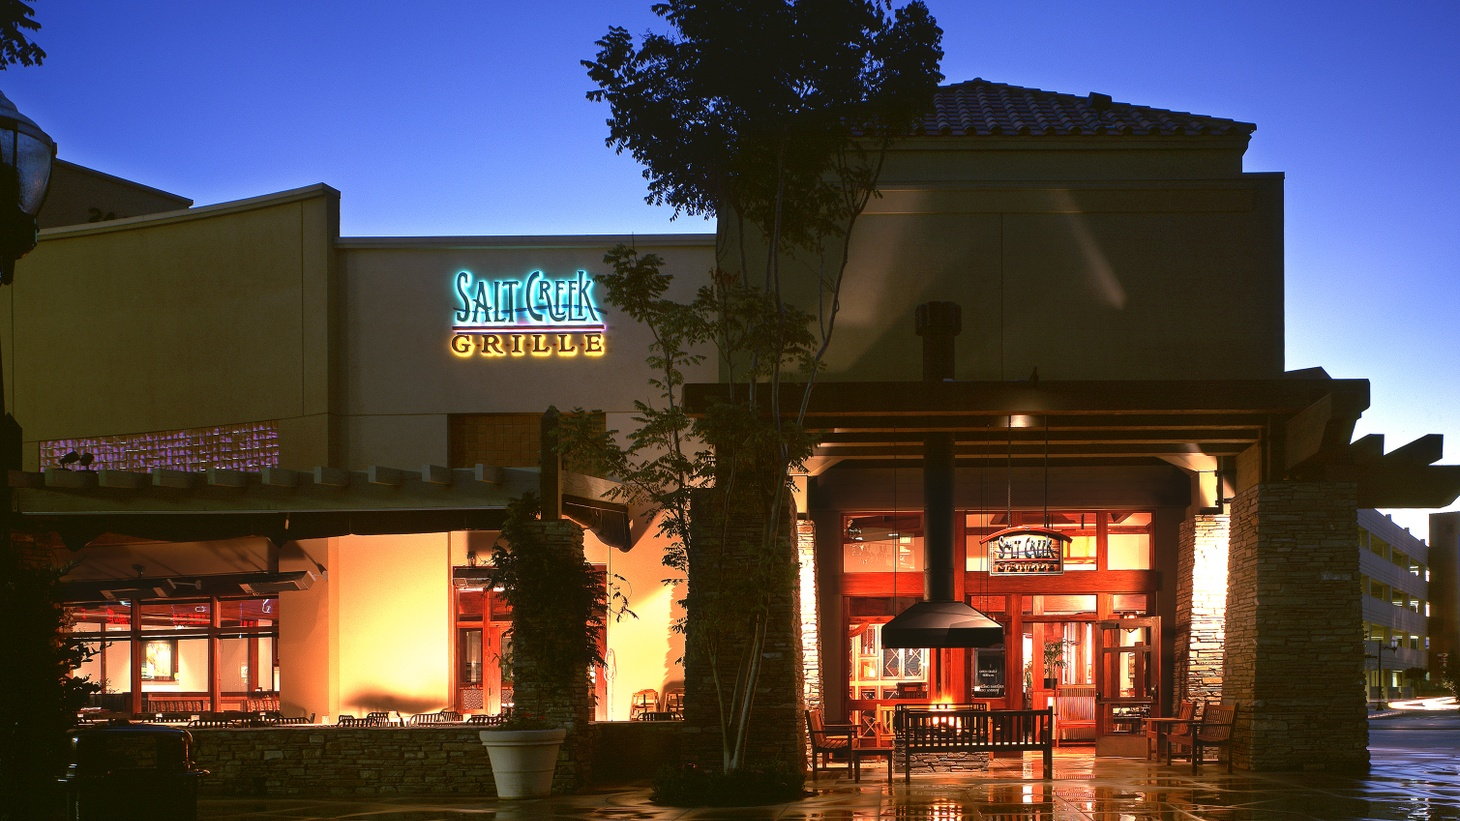 Salt Creek Grille in Valencia turned its large patio and outdoor waiting area into extra dining space. Now they won't be using it. Public health officials have suspended outdoor dining in LA County for the next three weeks, starting 10 p.m. this Wednesday.